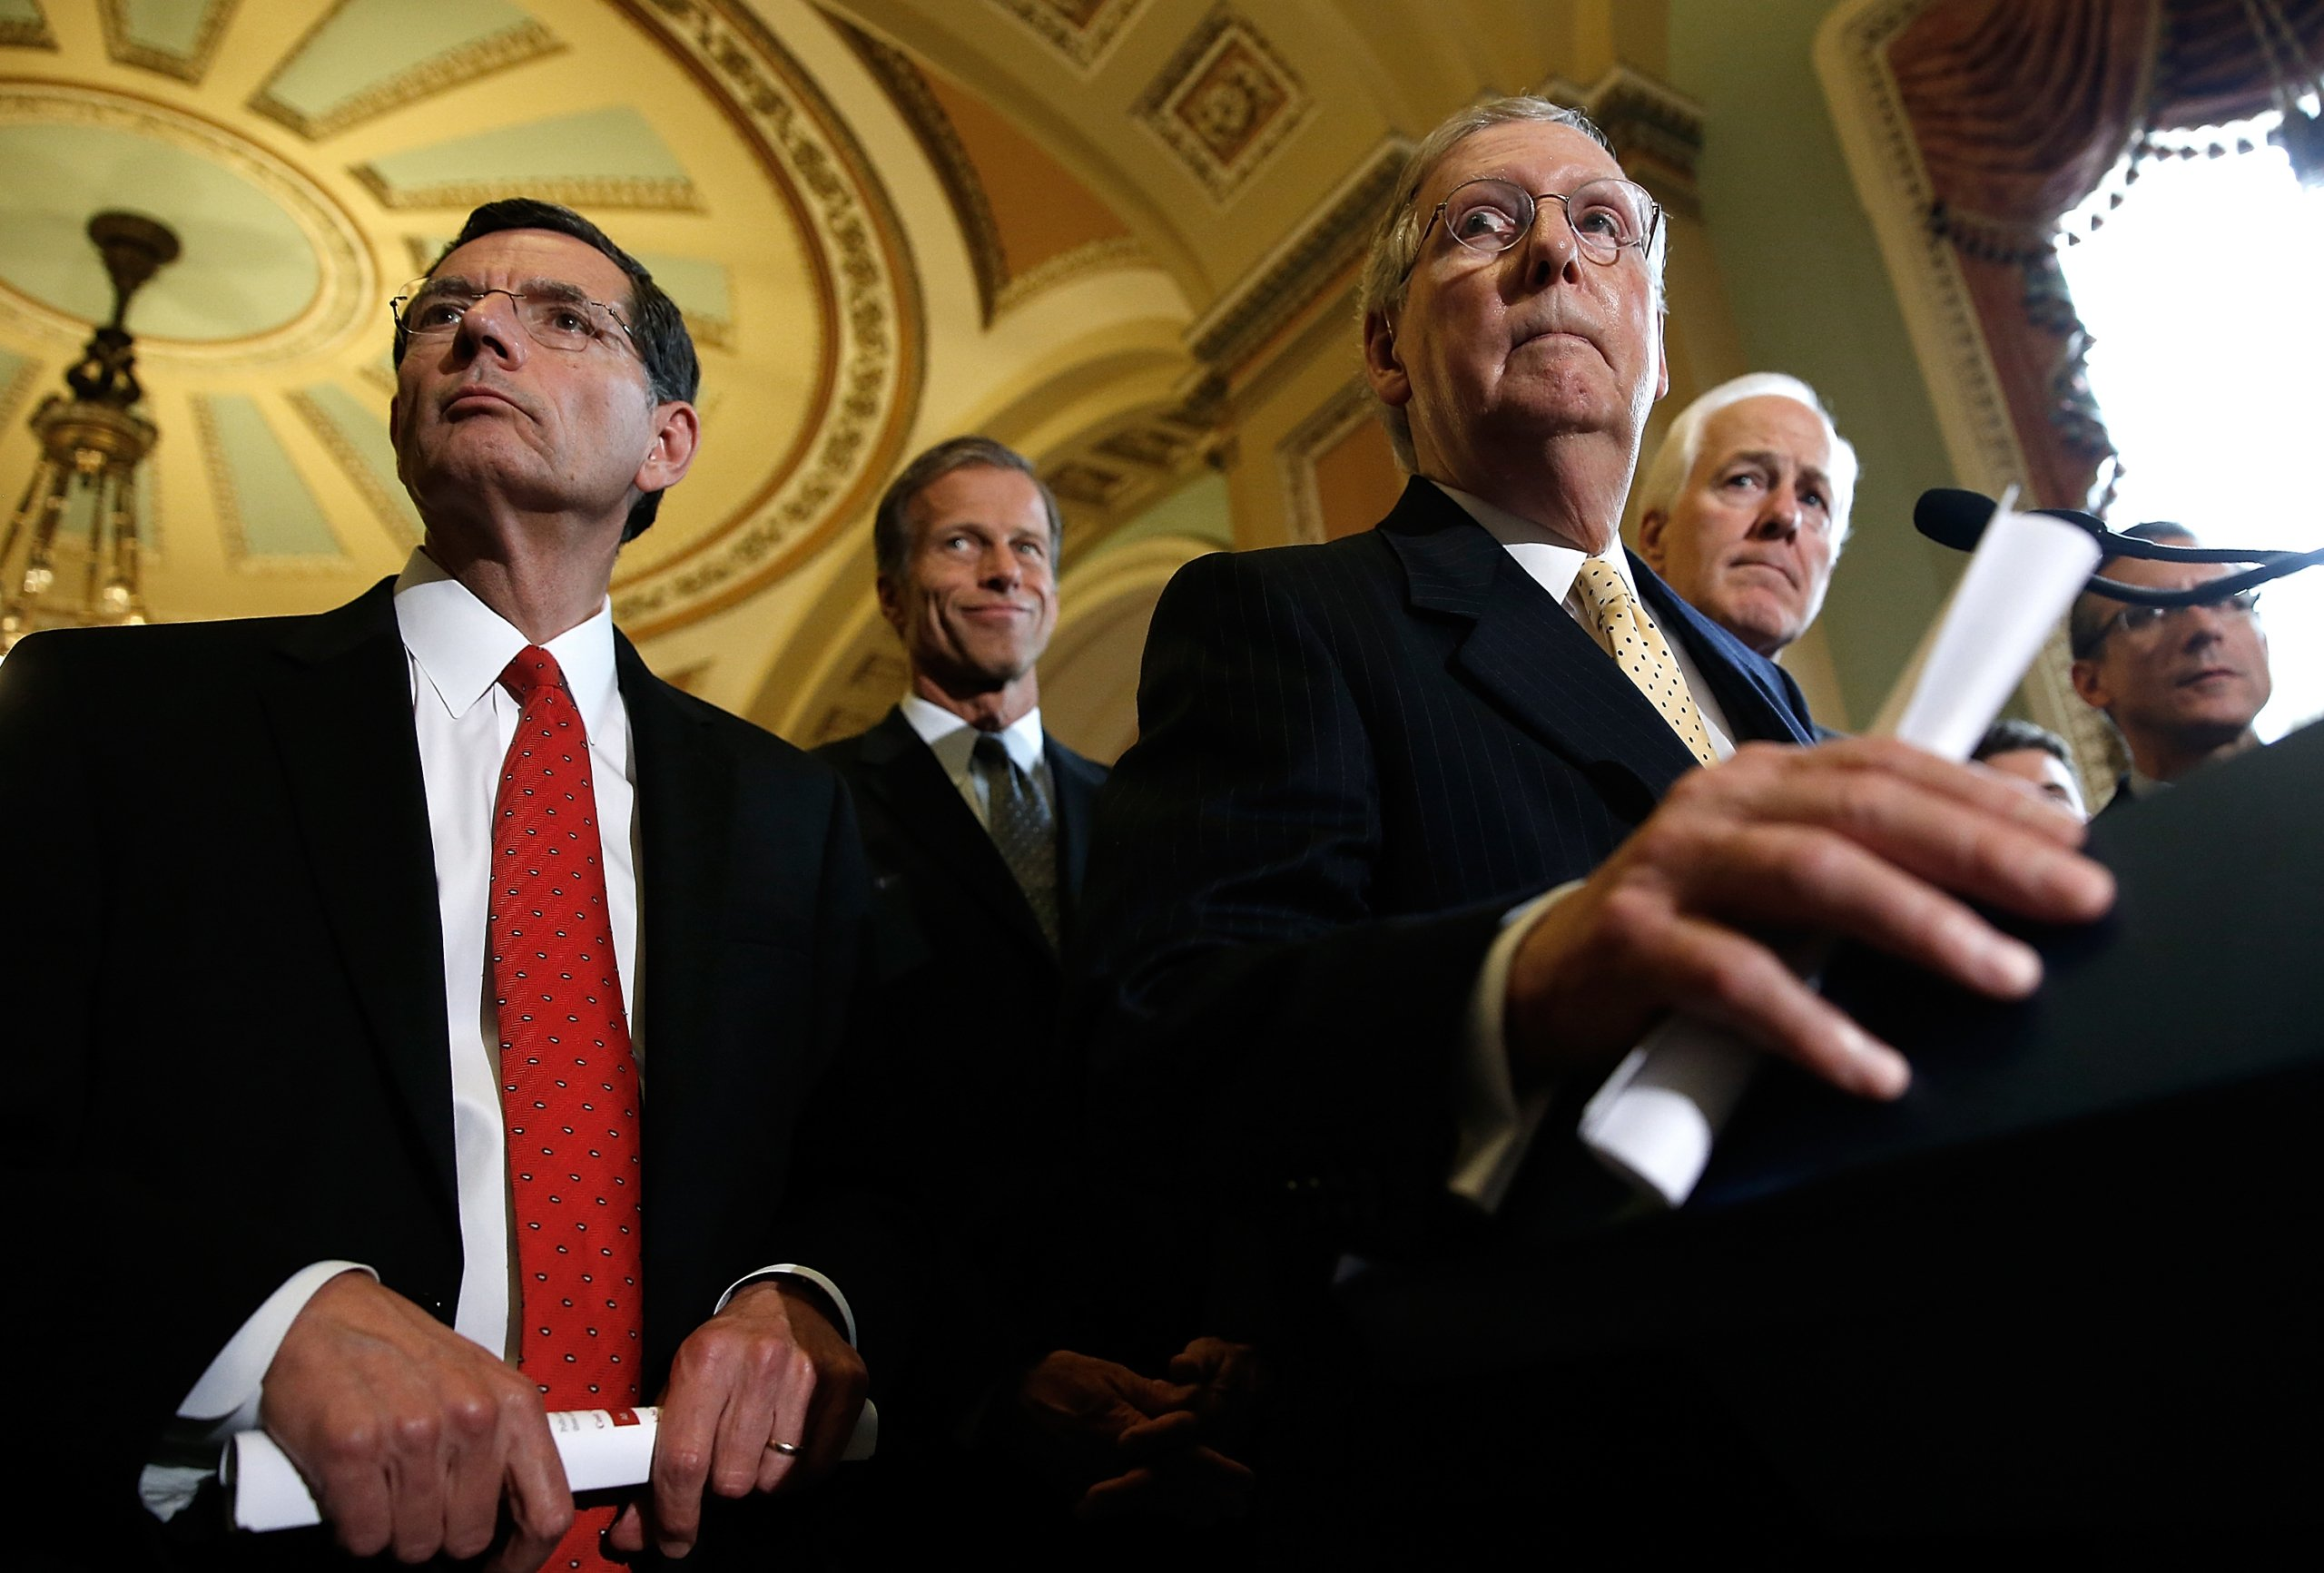 Senate Lawmakers Address The Media After Their Weekly Policy Meetings